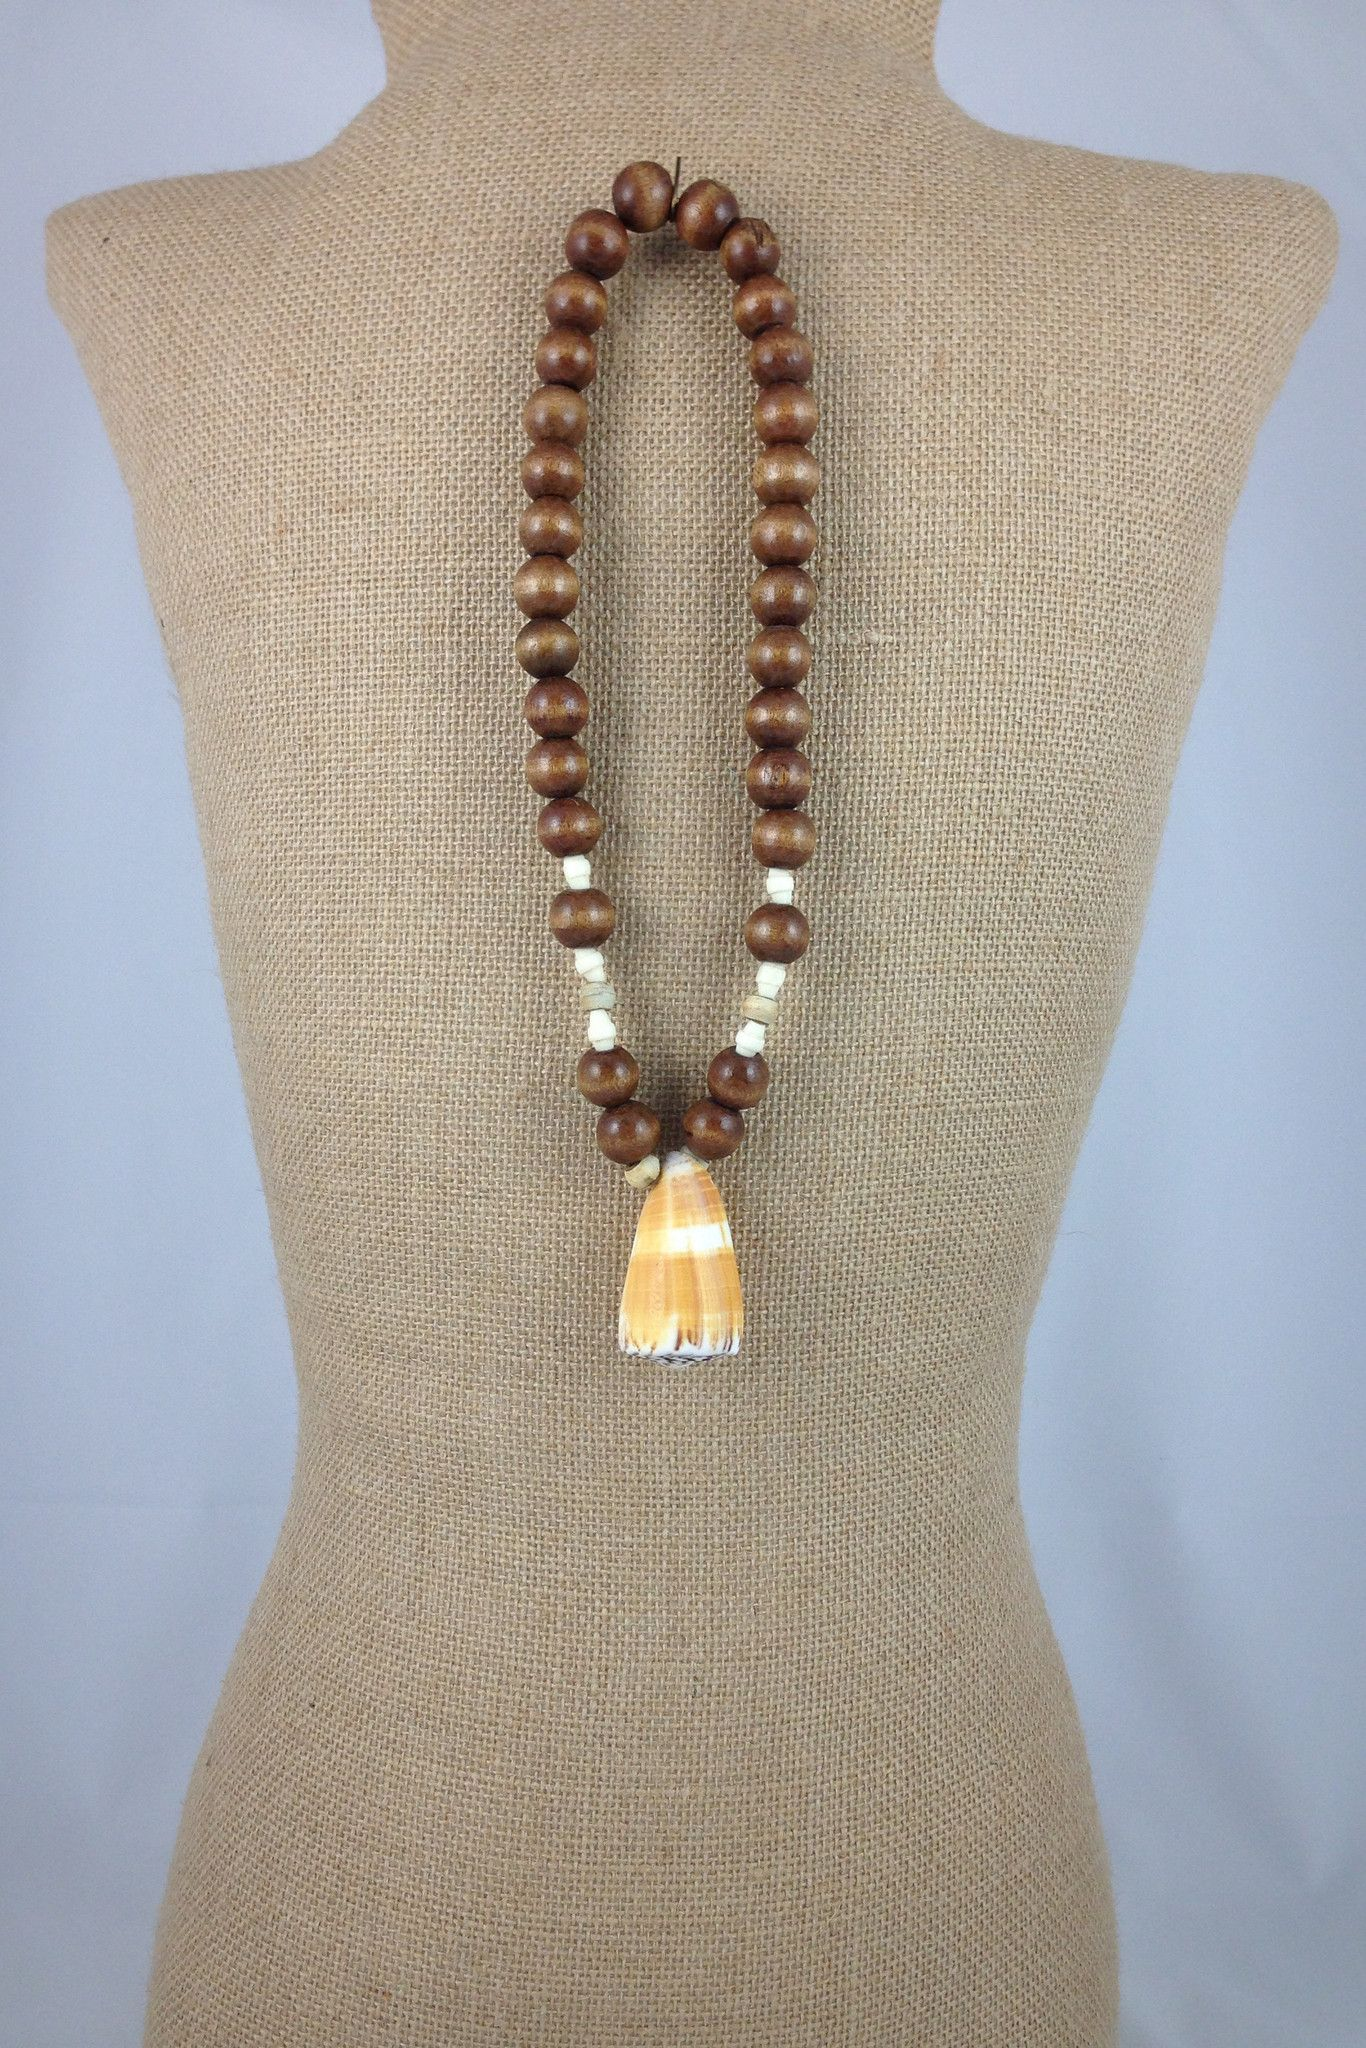 Little Twig Shells | Twig jewelry, Twine and twig, Necklace